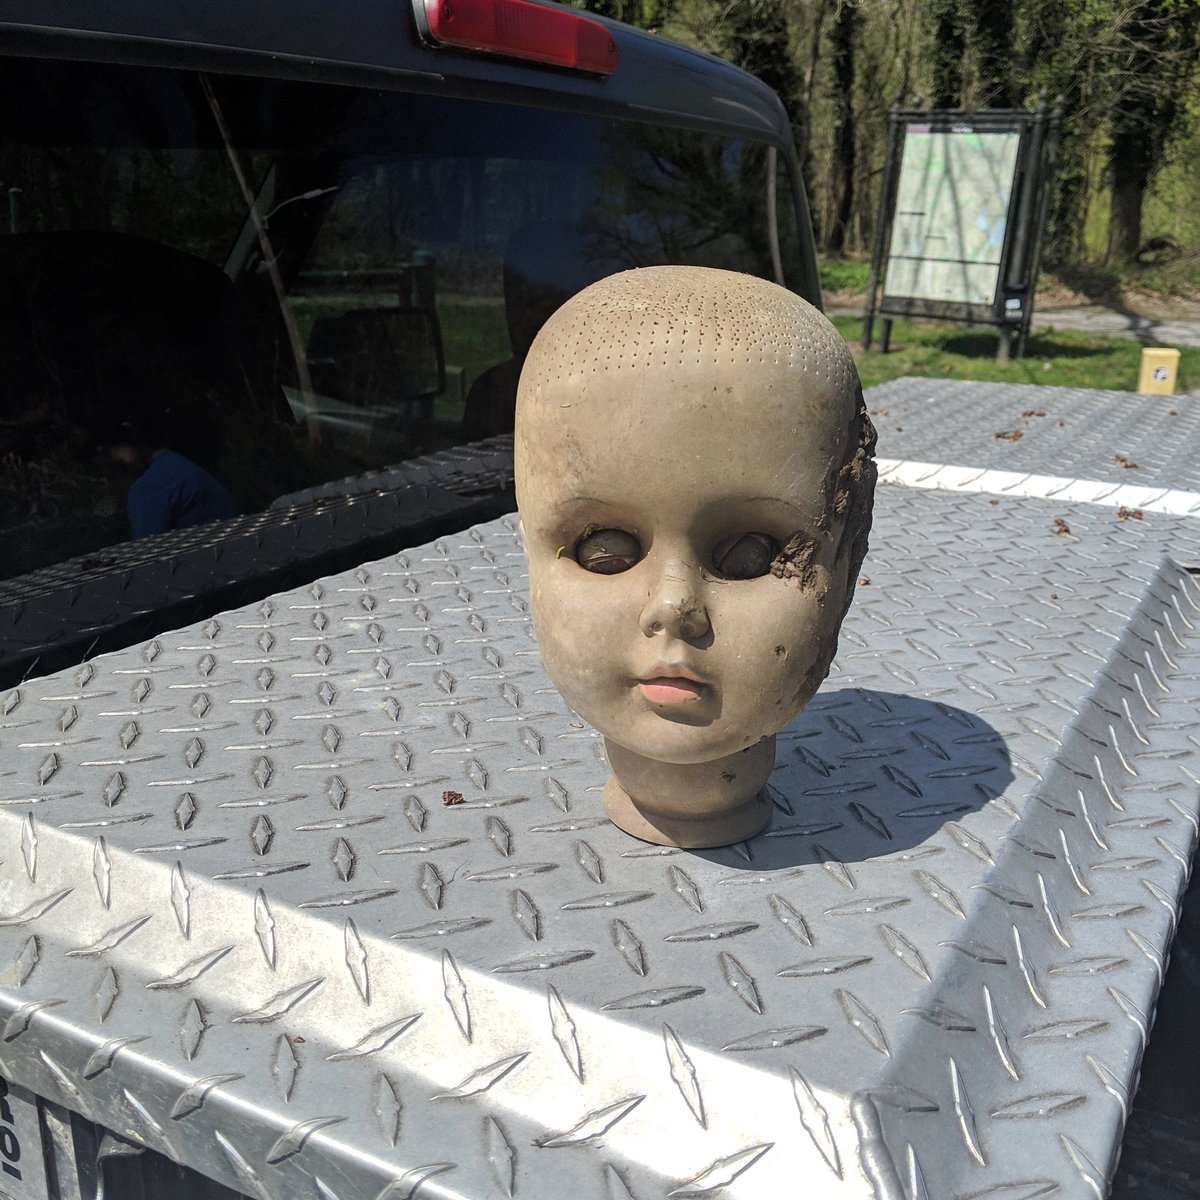 Found on my crew's latest #trashtag Baltimore clean-up today: not one but two empty cash-register drawers (hmm...) and this fantastic dollbaby head. Healthy Holly meet Filthy Dolly! h/t @fernshen